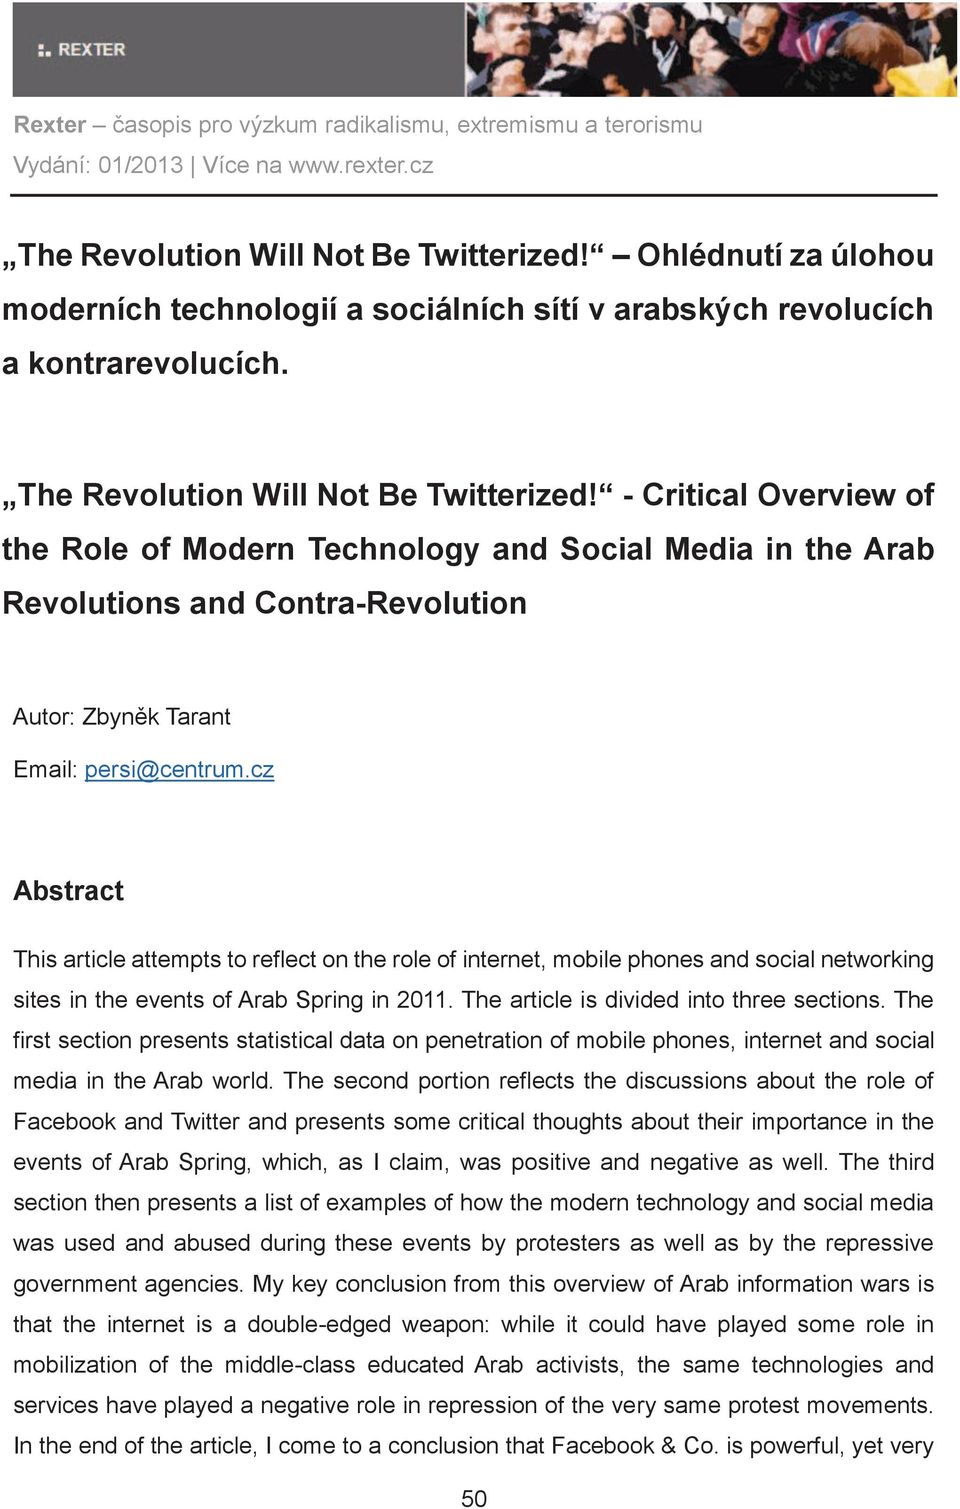 cz Abstract This article attempts to reflect on the role of internet, mobile phones and social networking sites in the events of Arab Spring in 2011. The article is divided into three sections.